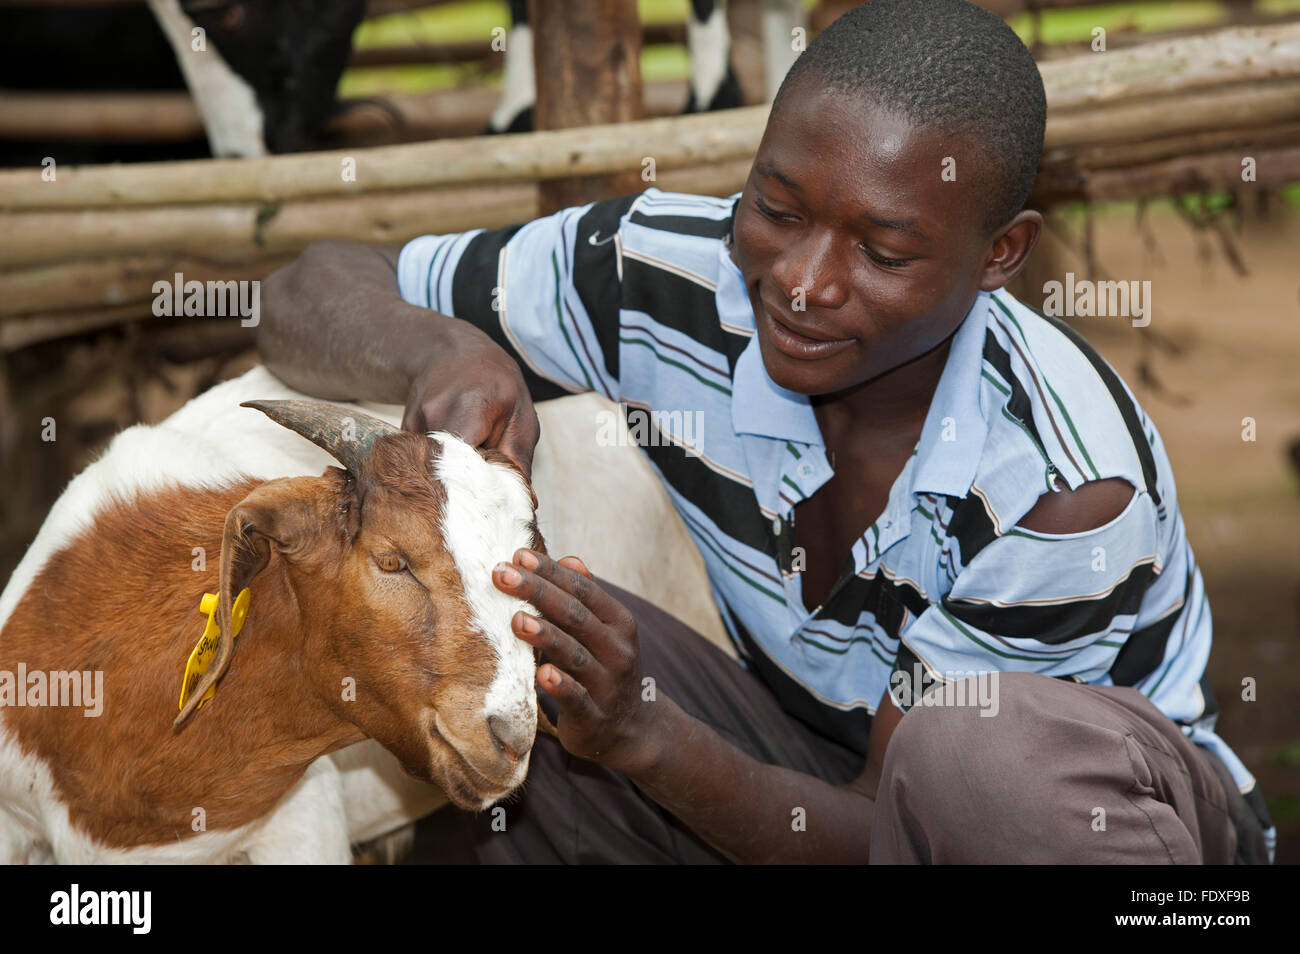 Young farmer with young Boer goat, which produces more meat than traditional breeds, Uganda. - Stock Image